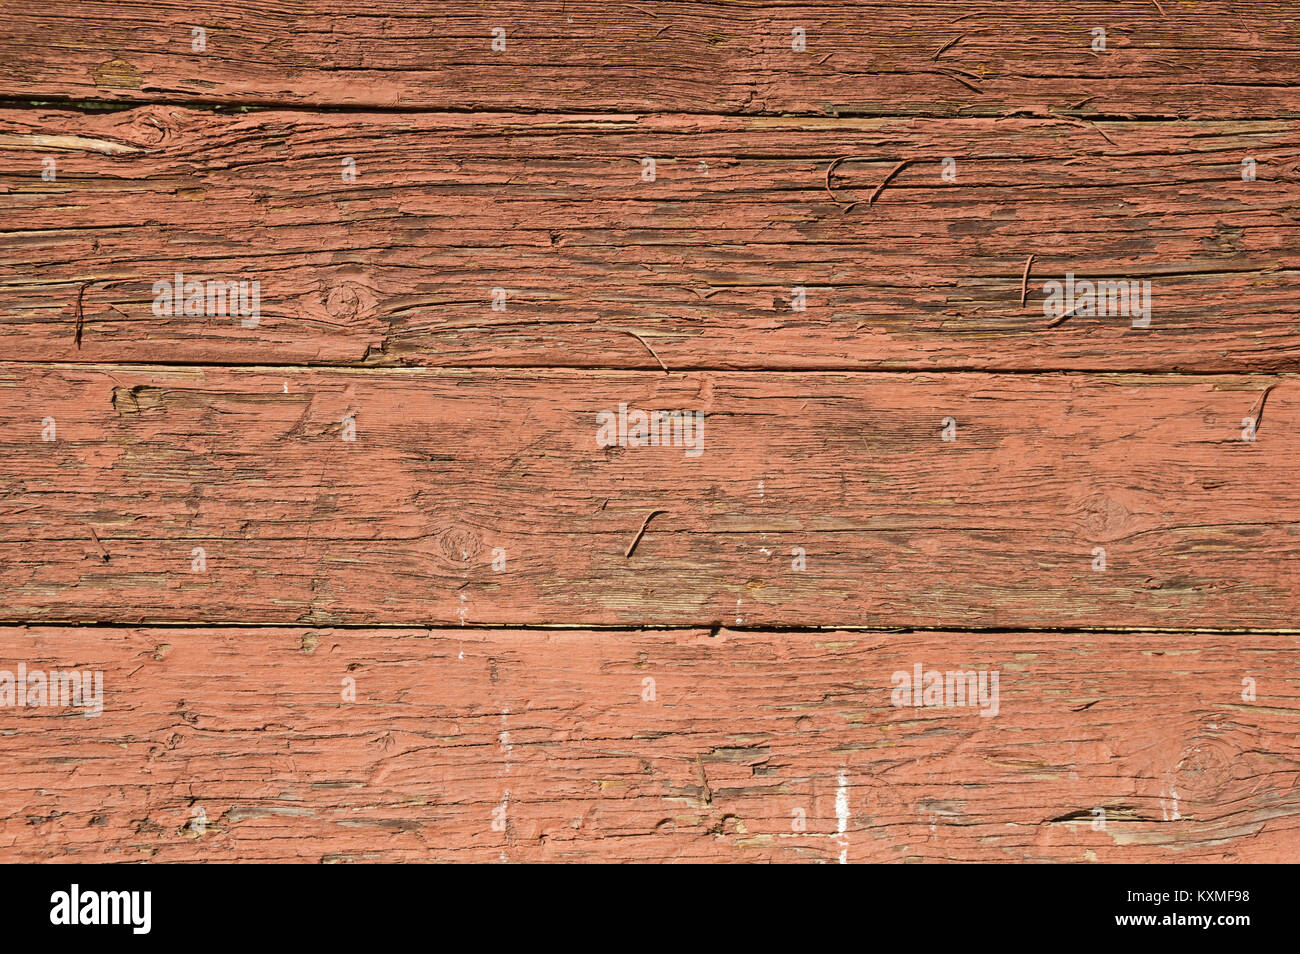 old red painted wood background with cracked and peeling paint - Stock Image